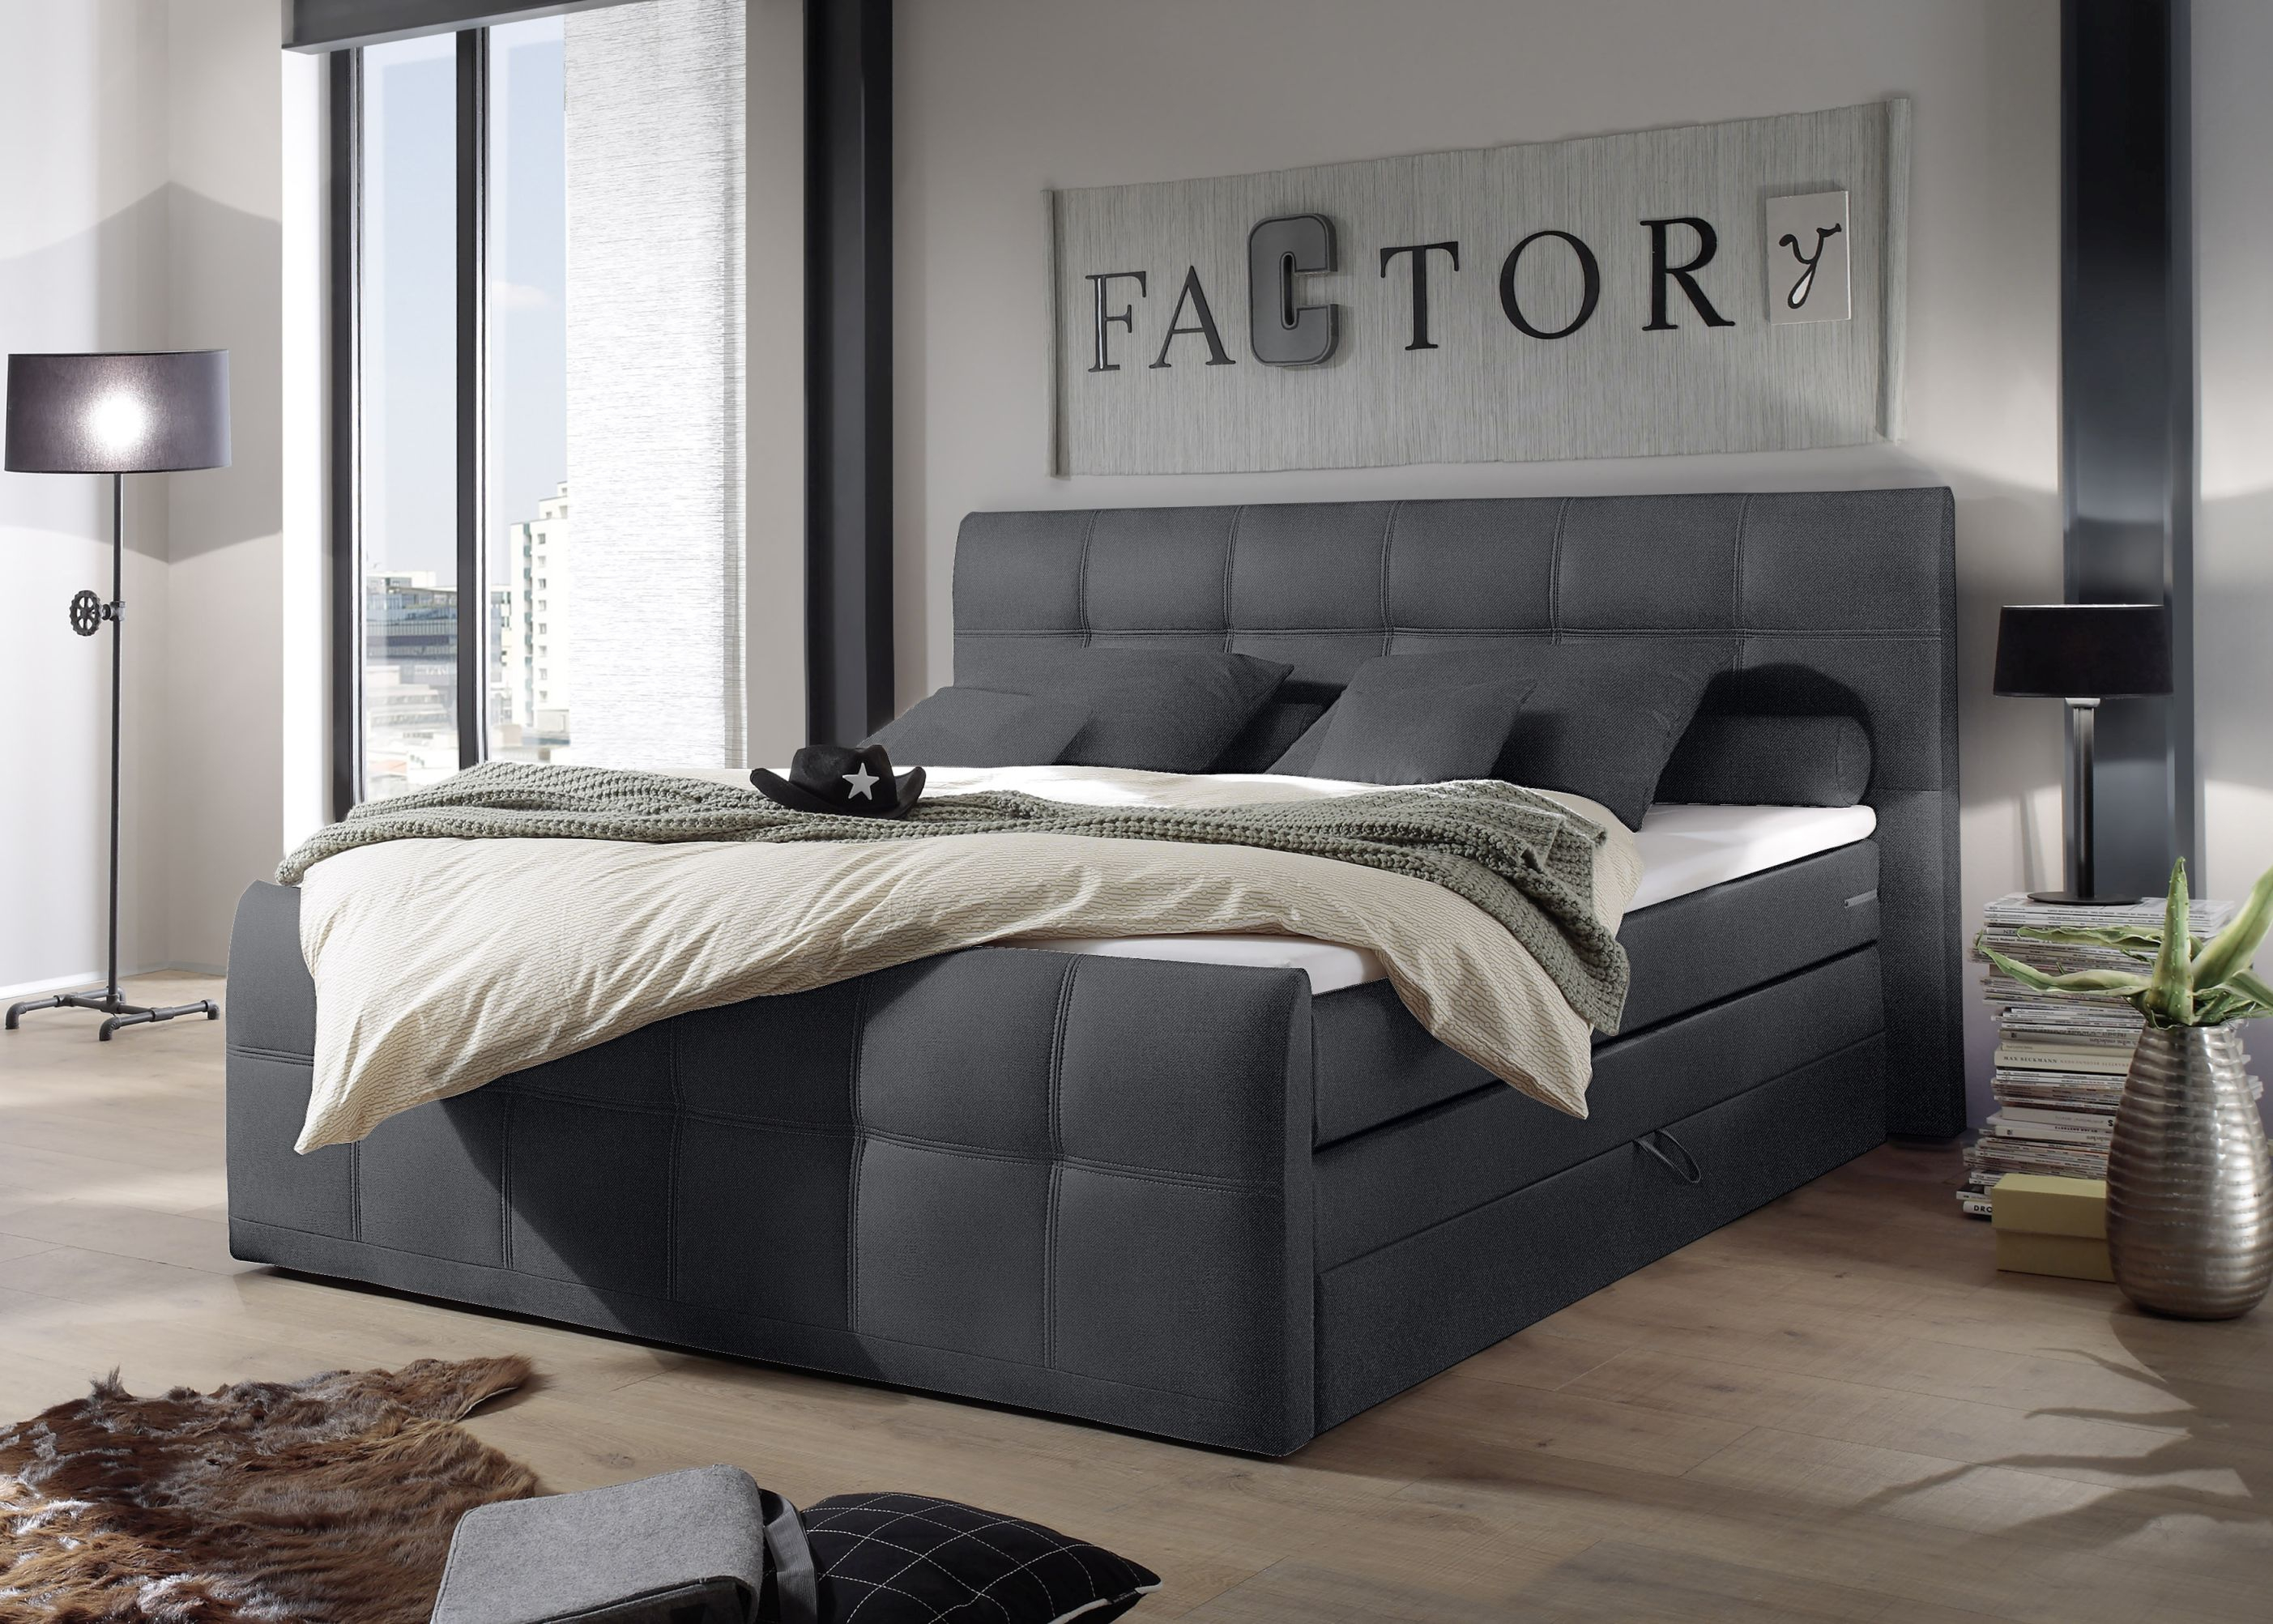 funktionspolsterbett boxspringbett doppelbett polsterbett 180cm grau sacb2 ebay. Black Bedroom Furniture Sets. Home Design Ideas